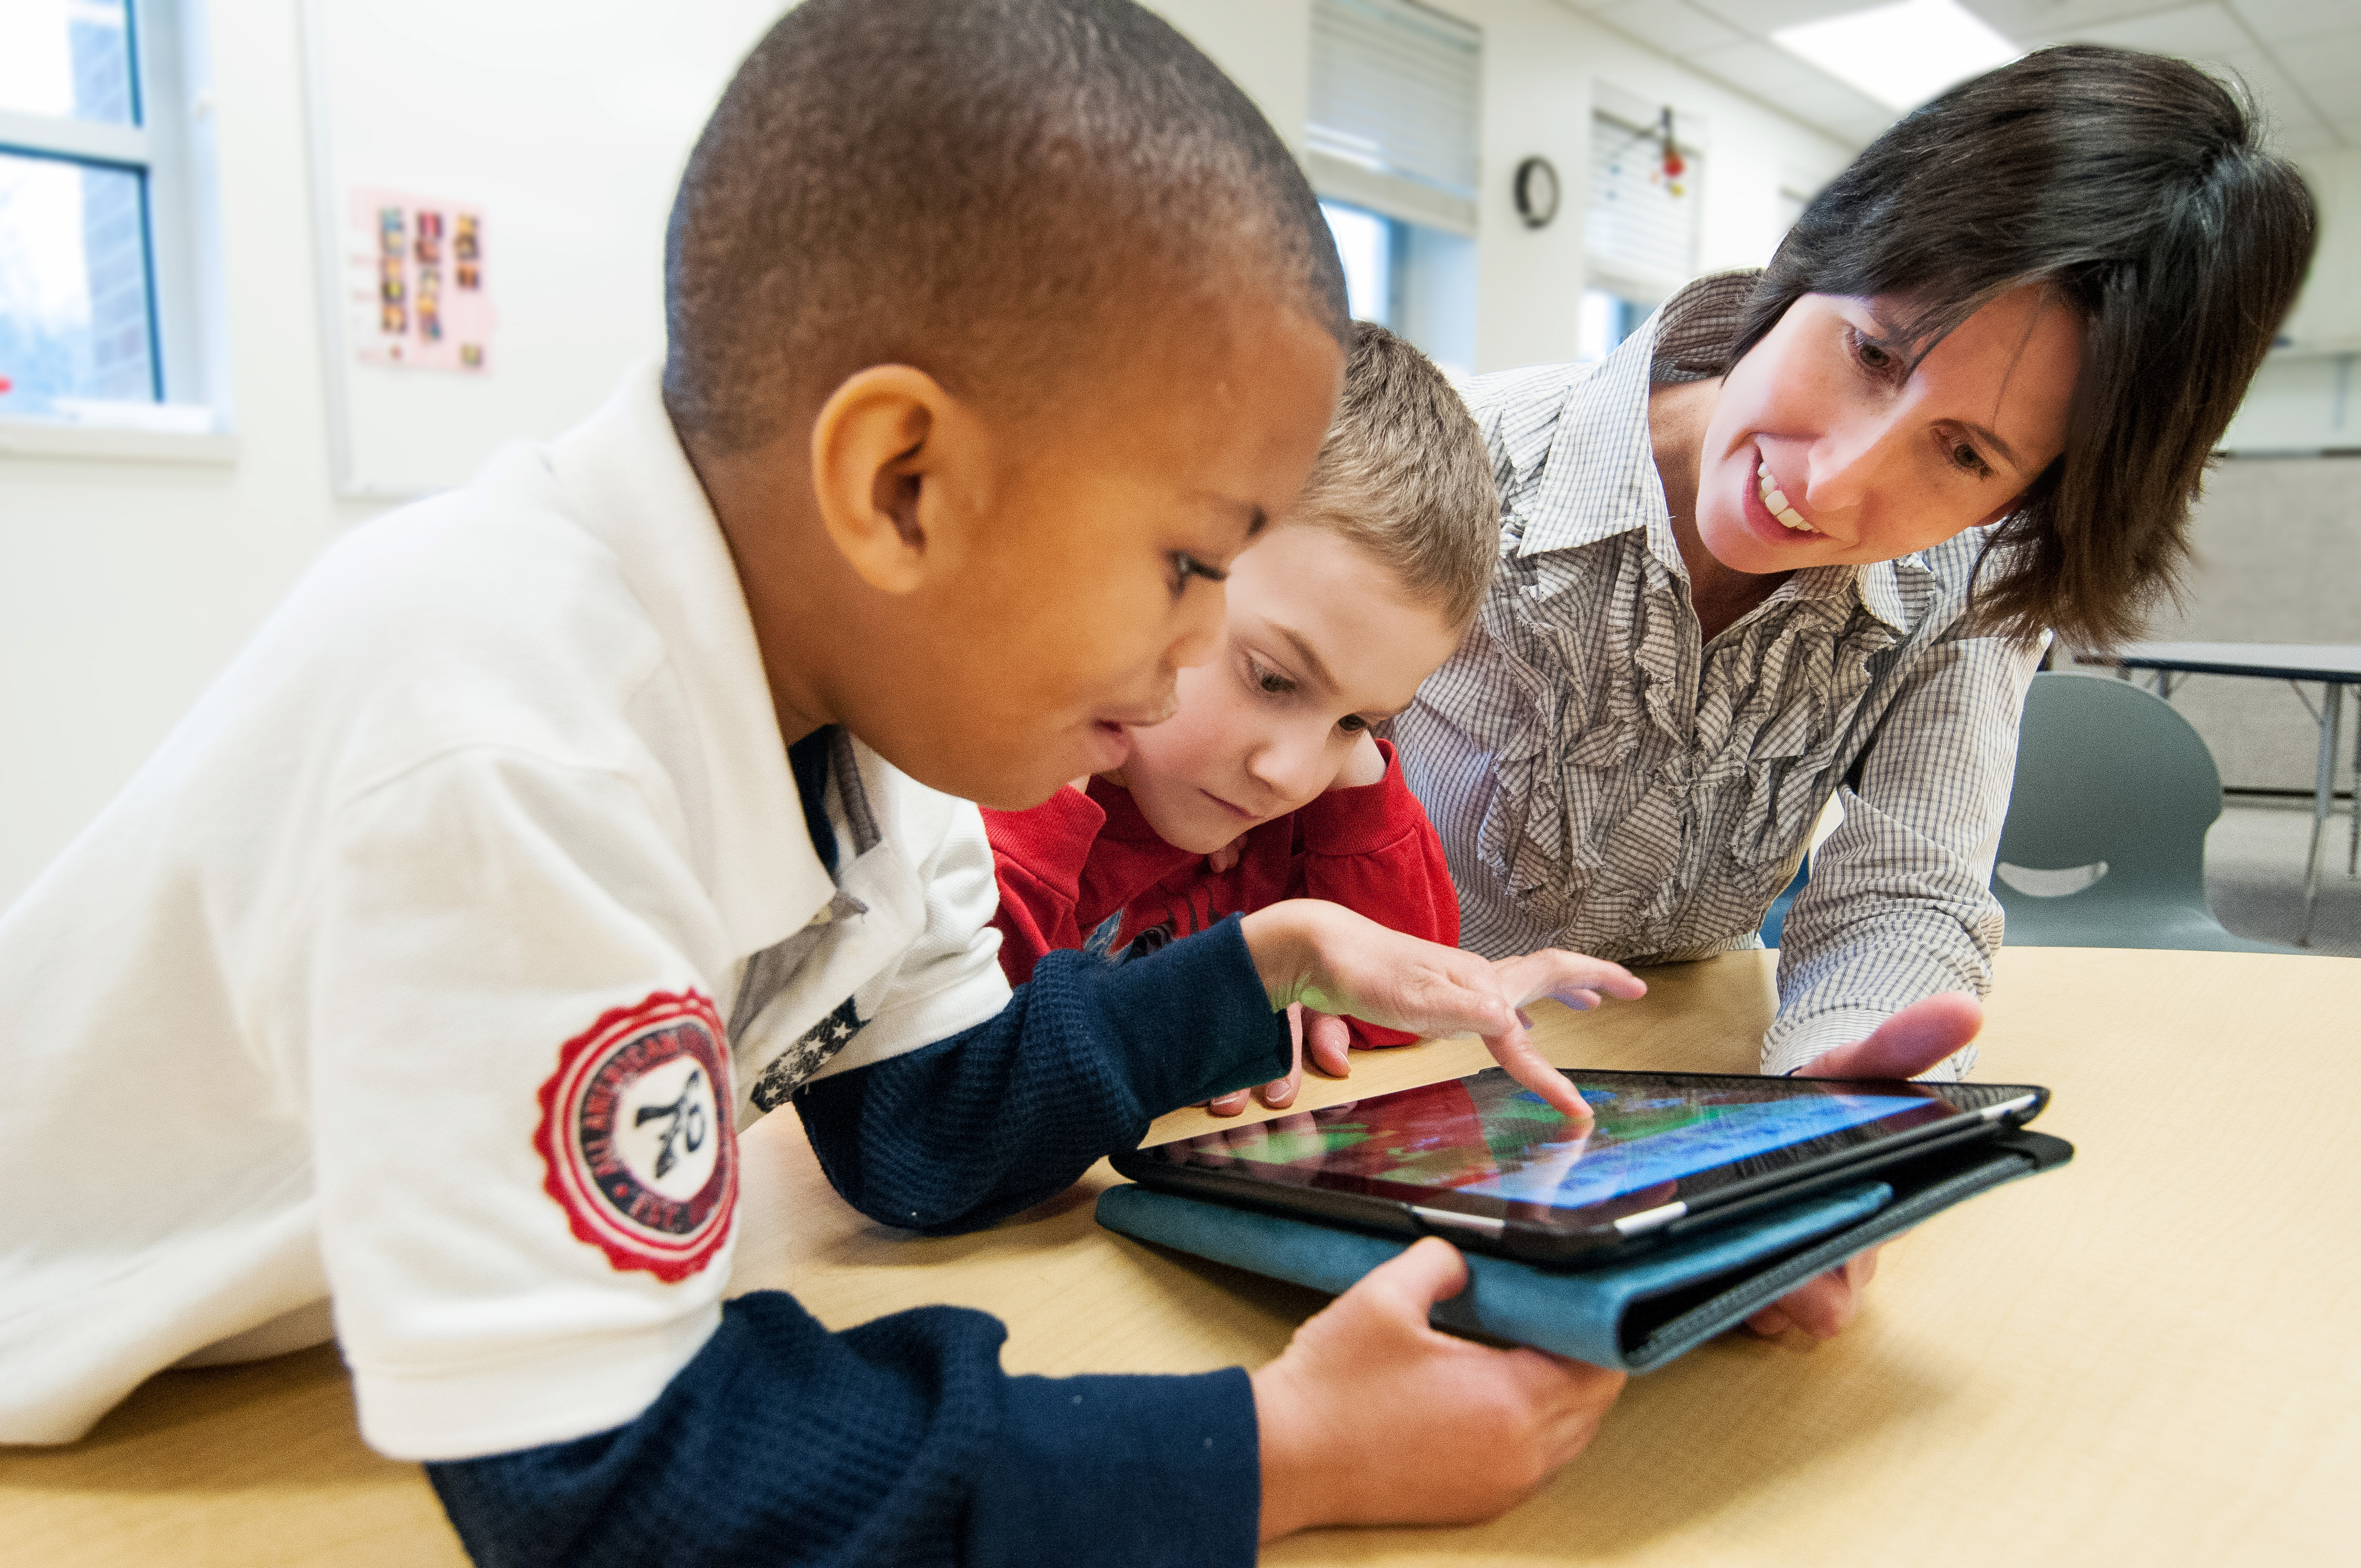 How To Set Up A New Ipad For Your Kid